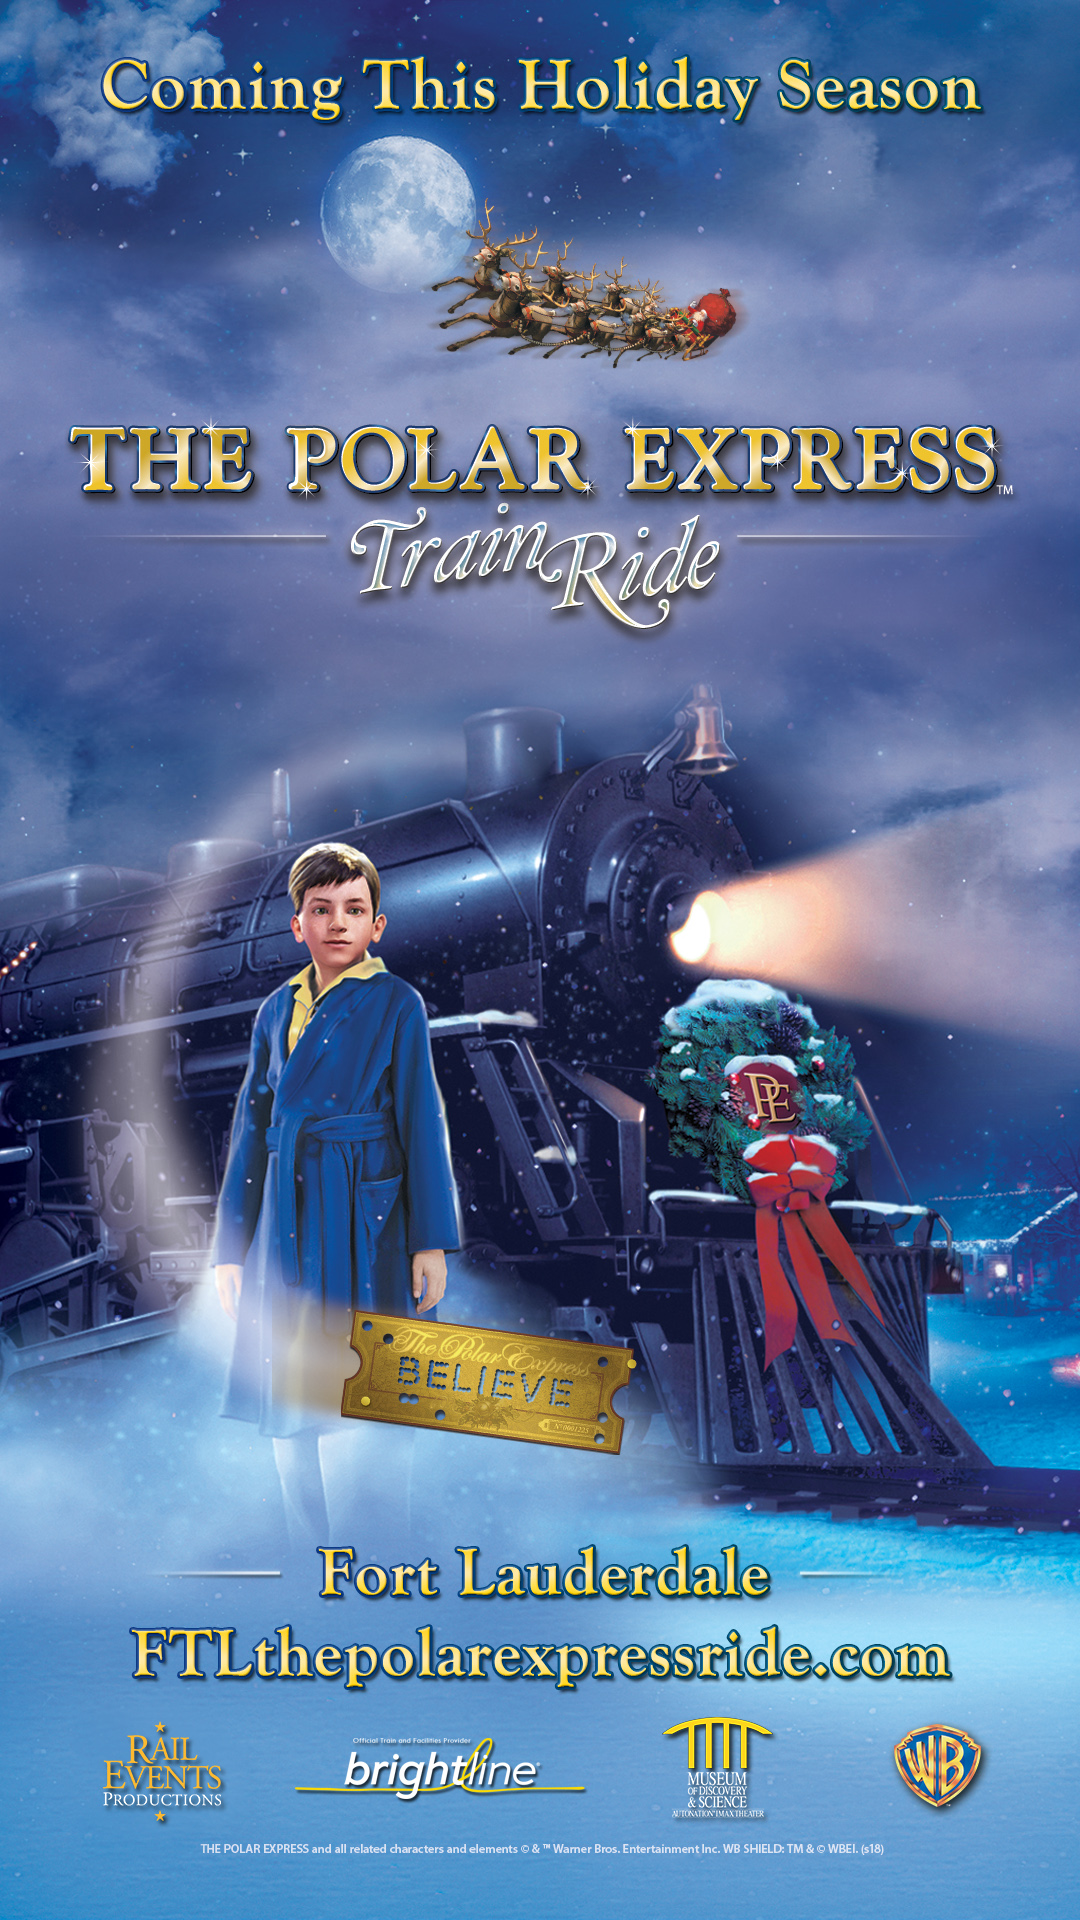 Auditions for THE POLAR EXPRESS™ Train Ride in Fort Lauderdale